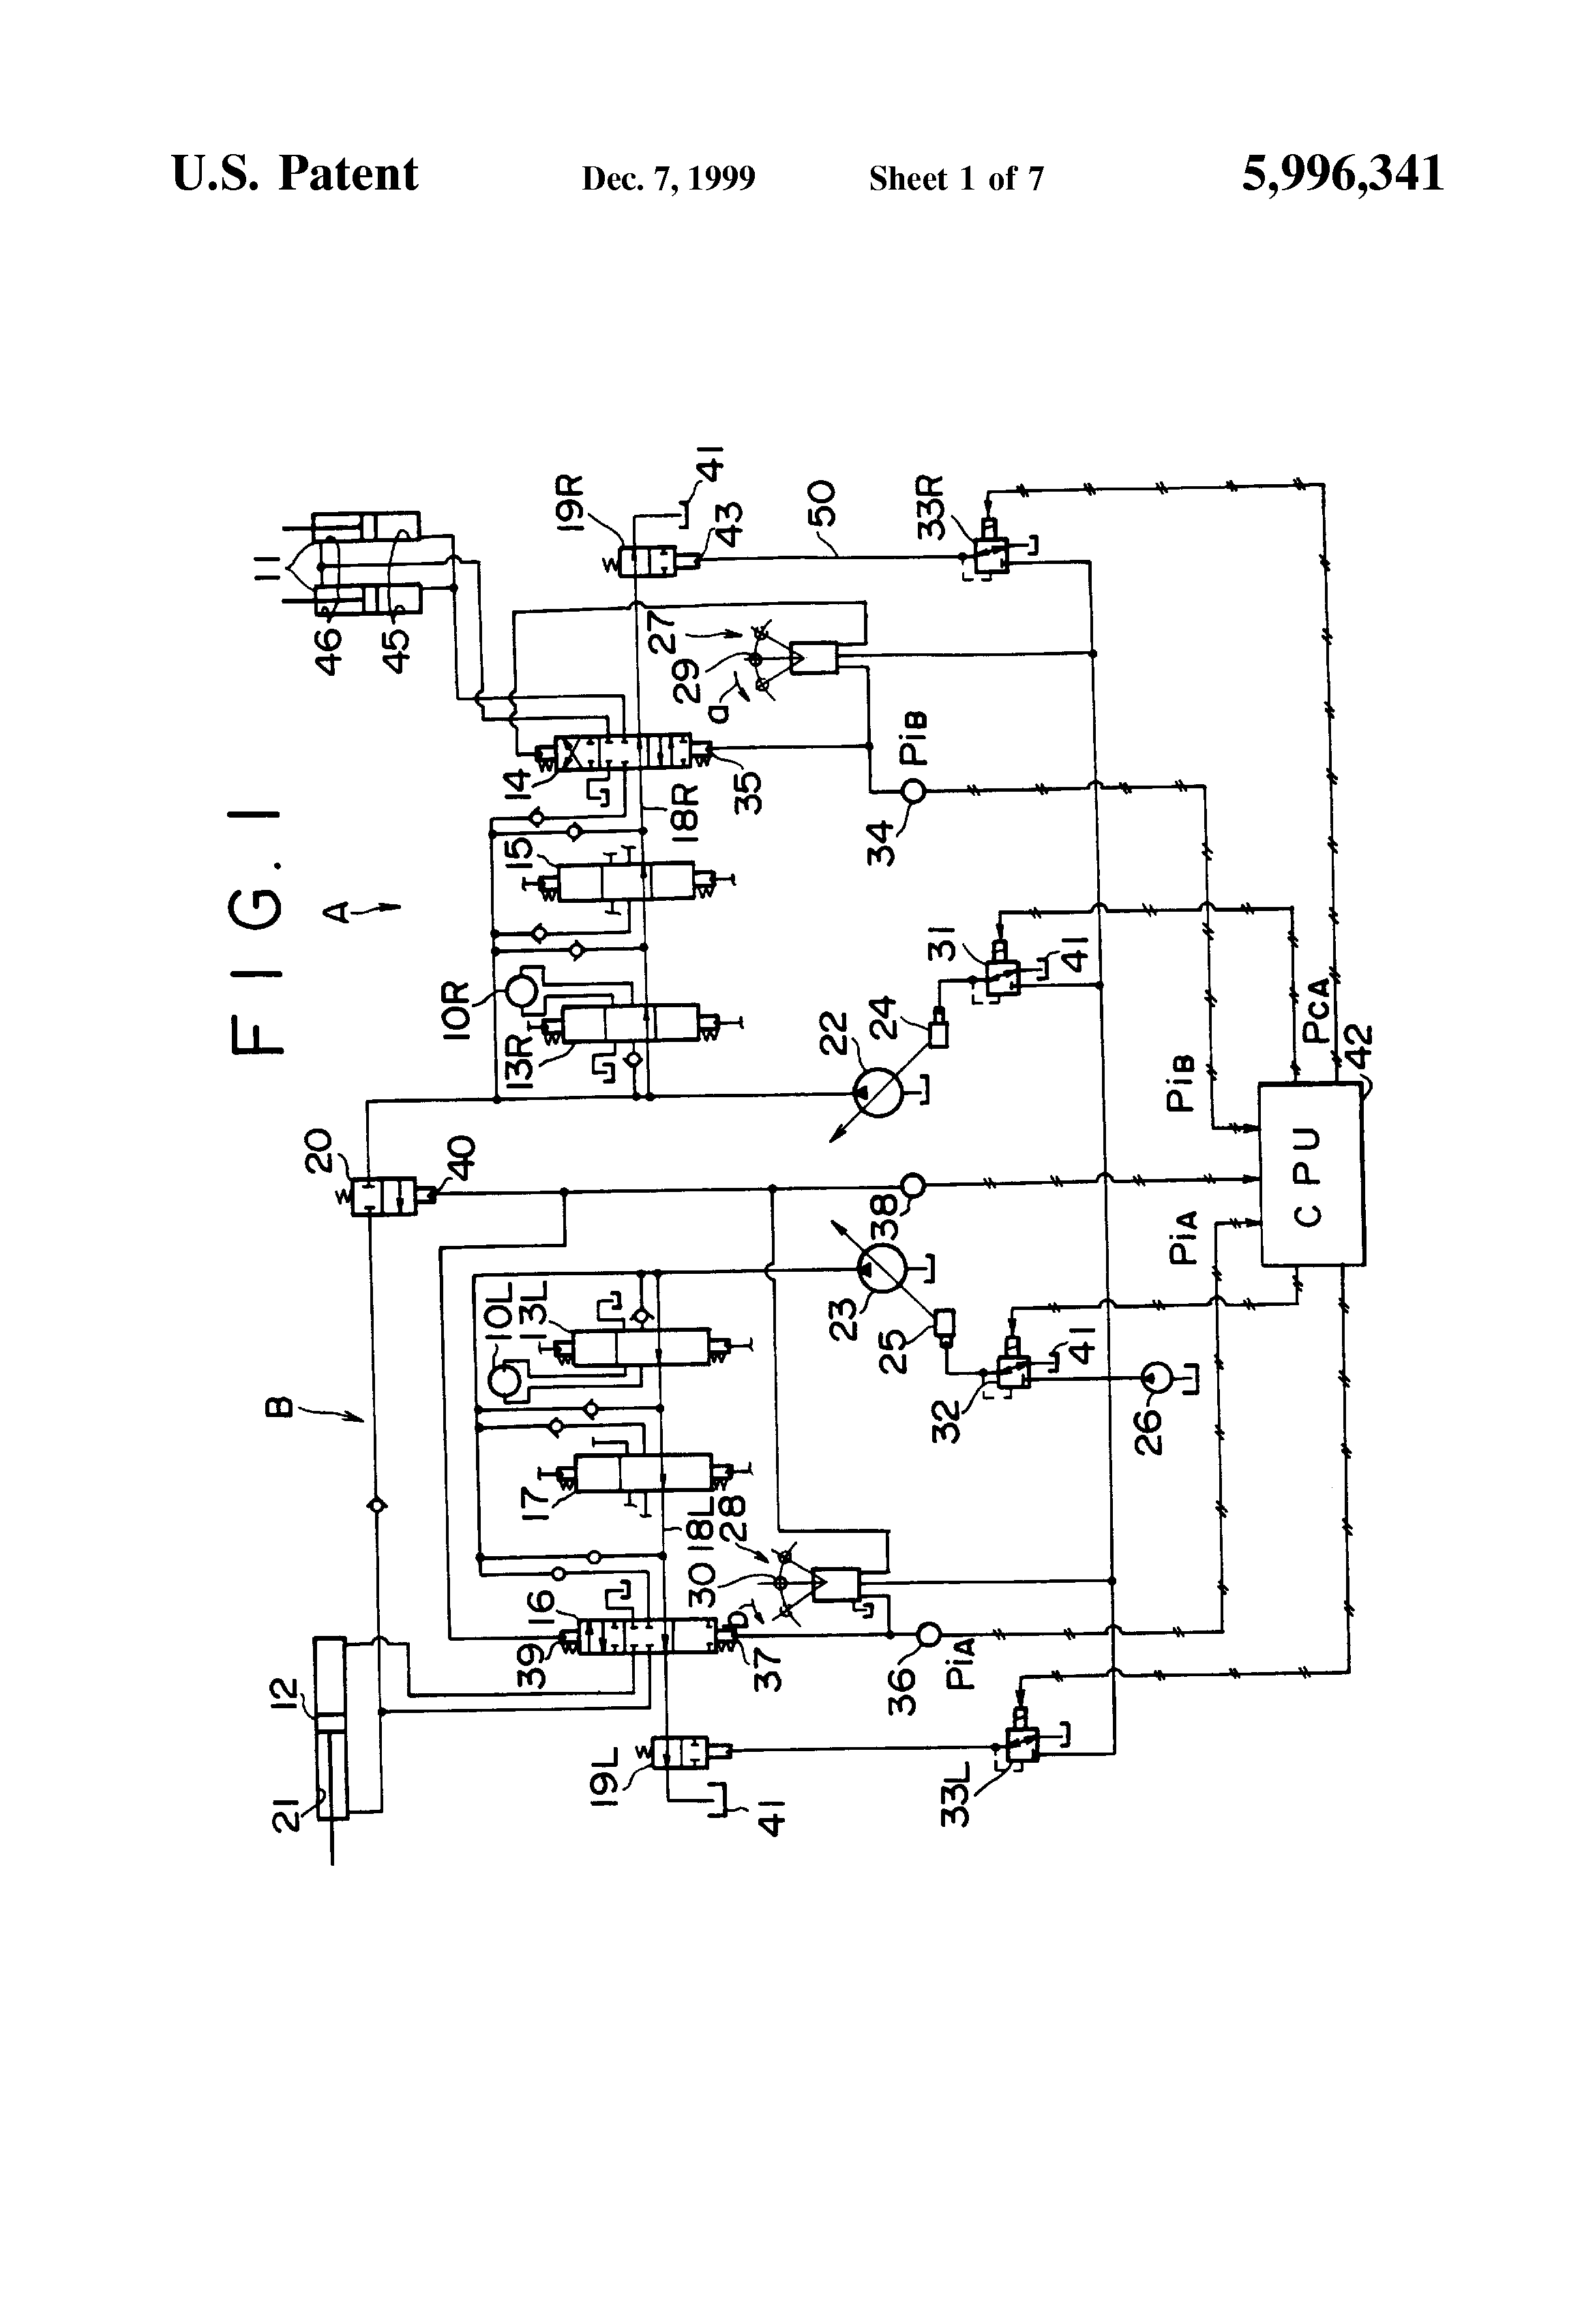 vactor wiring diagrams with Palfinger Wiring Diagrams on Wiring Diagram Toyota Townace moreover Wiring Diagram Of Kawasaki Hd3 furthermore Palfinger Wiring Diagrams as well 110 Atv Wiring Diagram moreover Century Cl Freightliner Wiring Diagram.